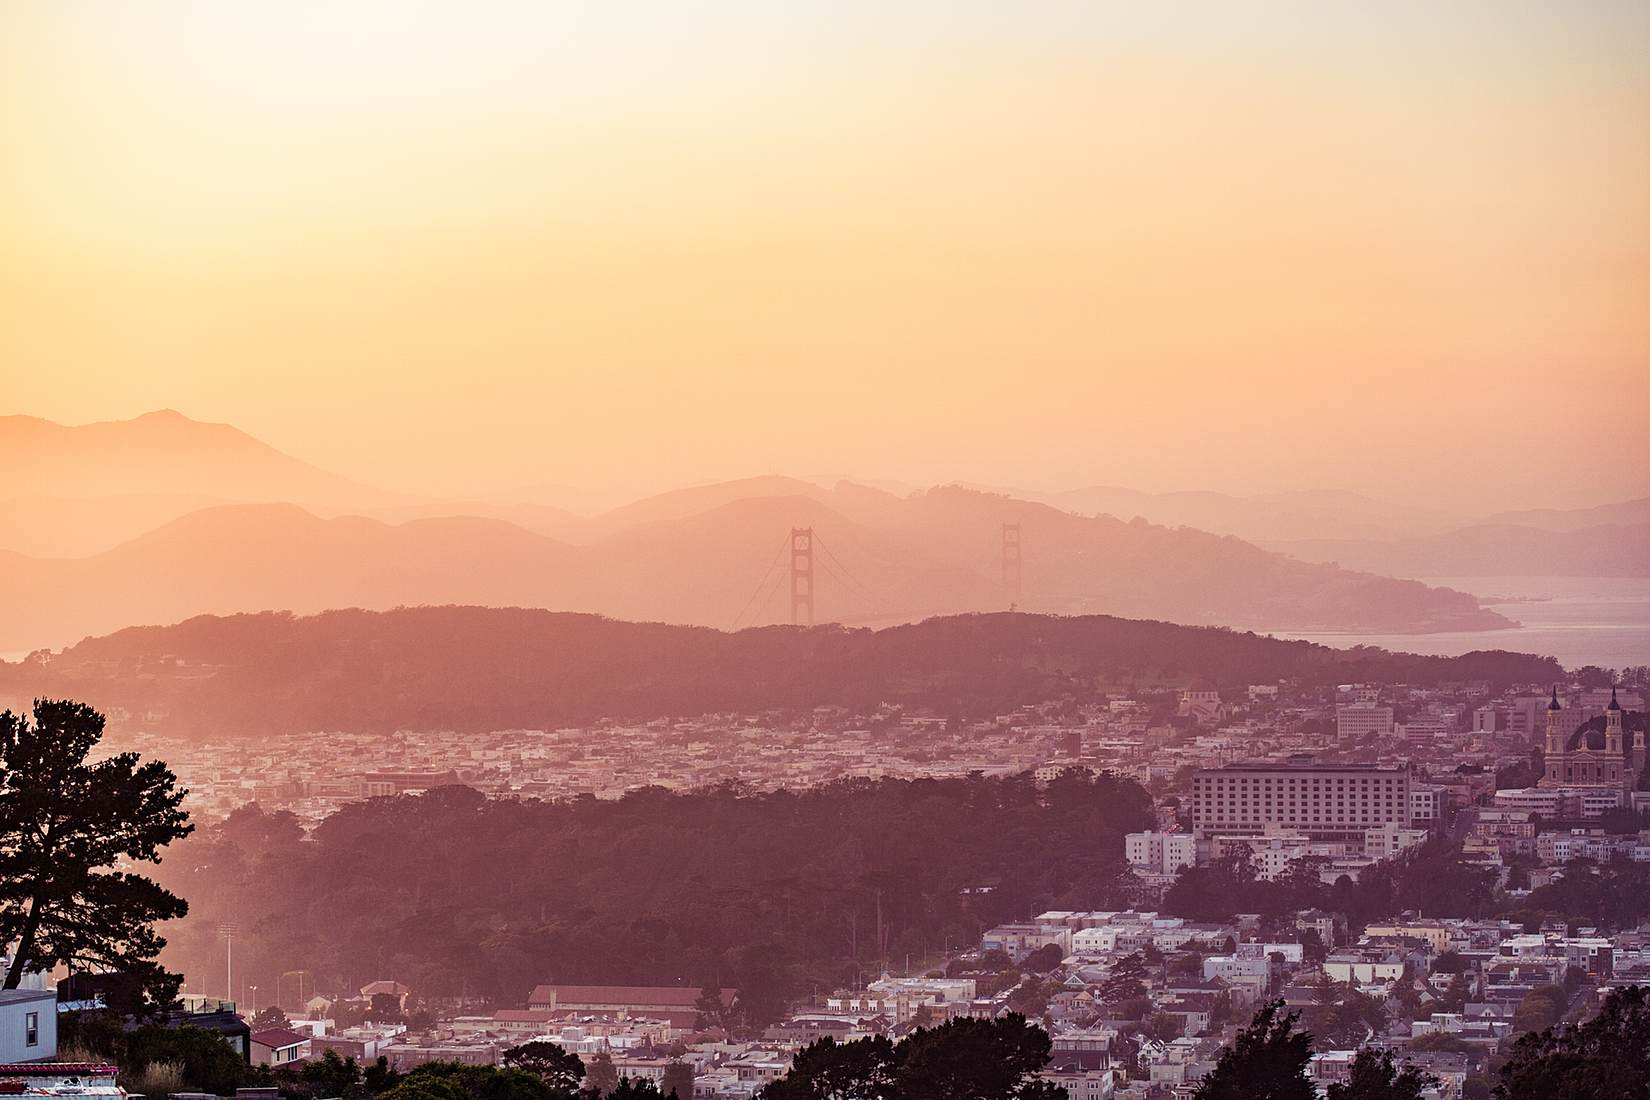 evening-san-francisco-hills-with-the-golden-gate-bridge-in-the-distance